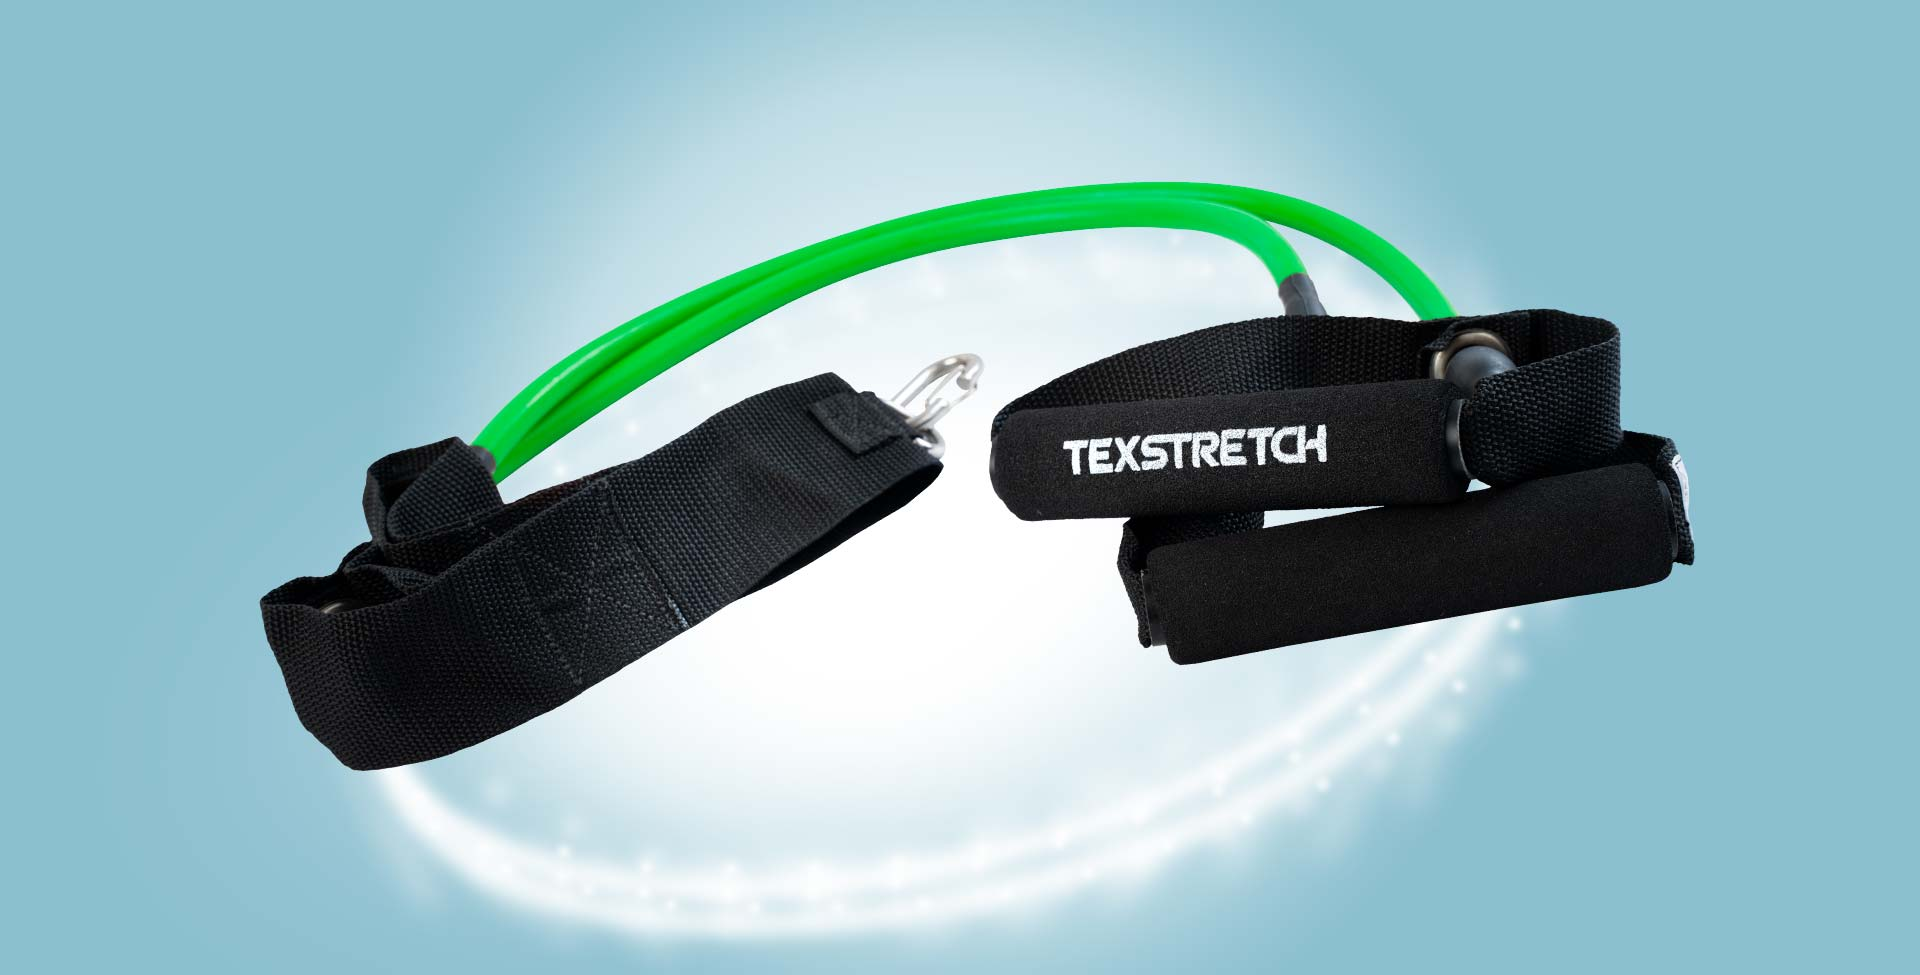 Texstretch Hung Stretcher